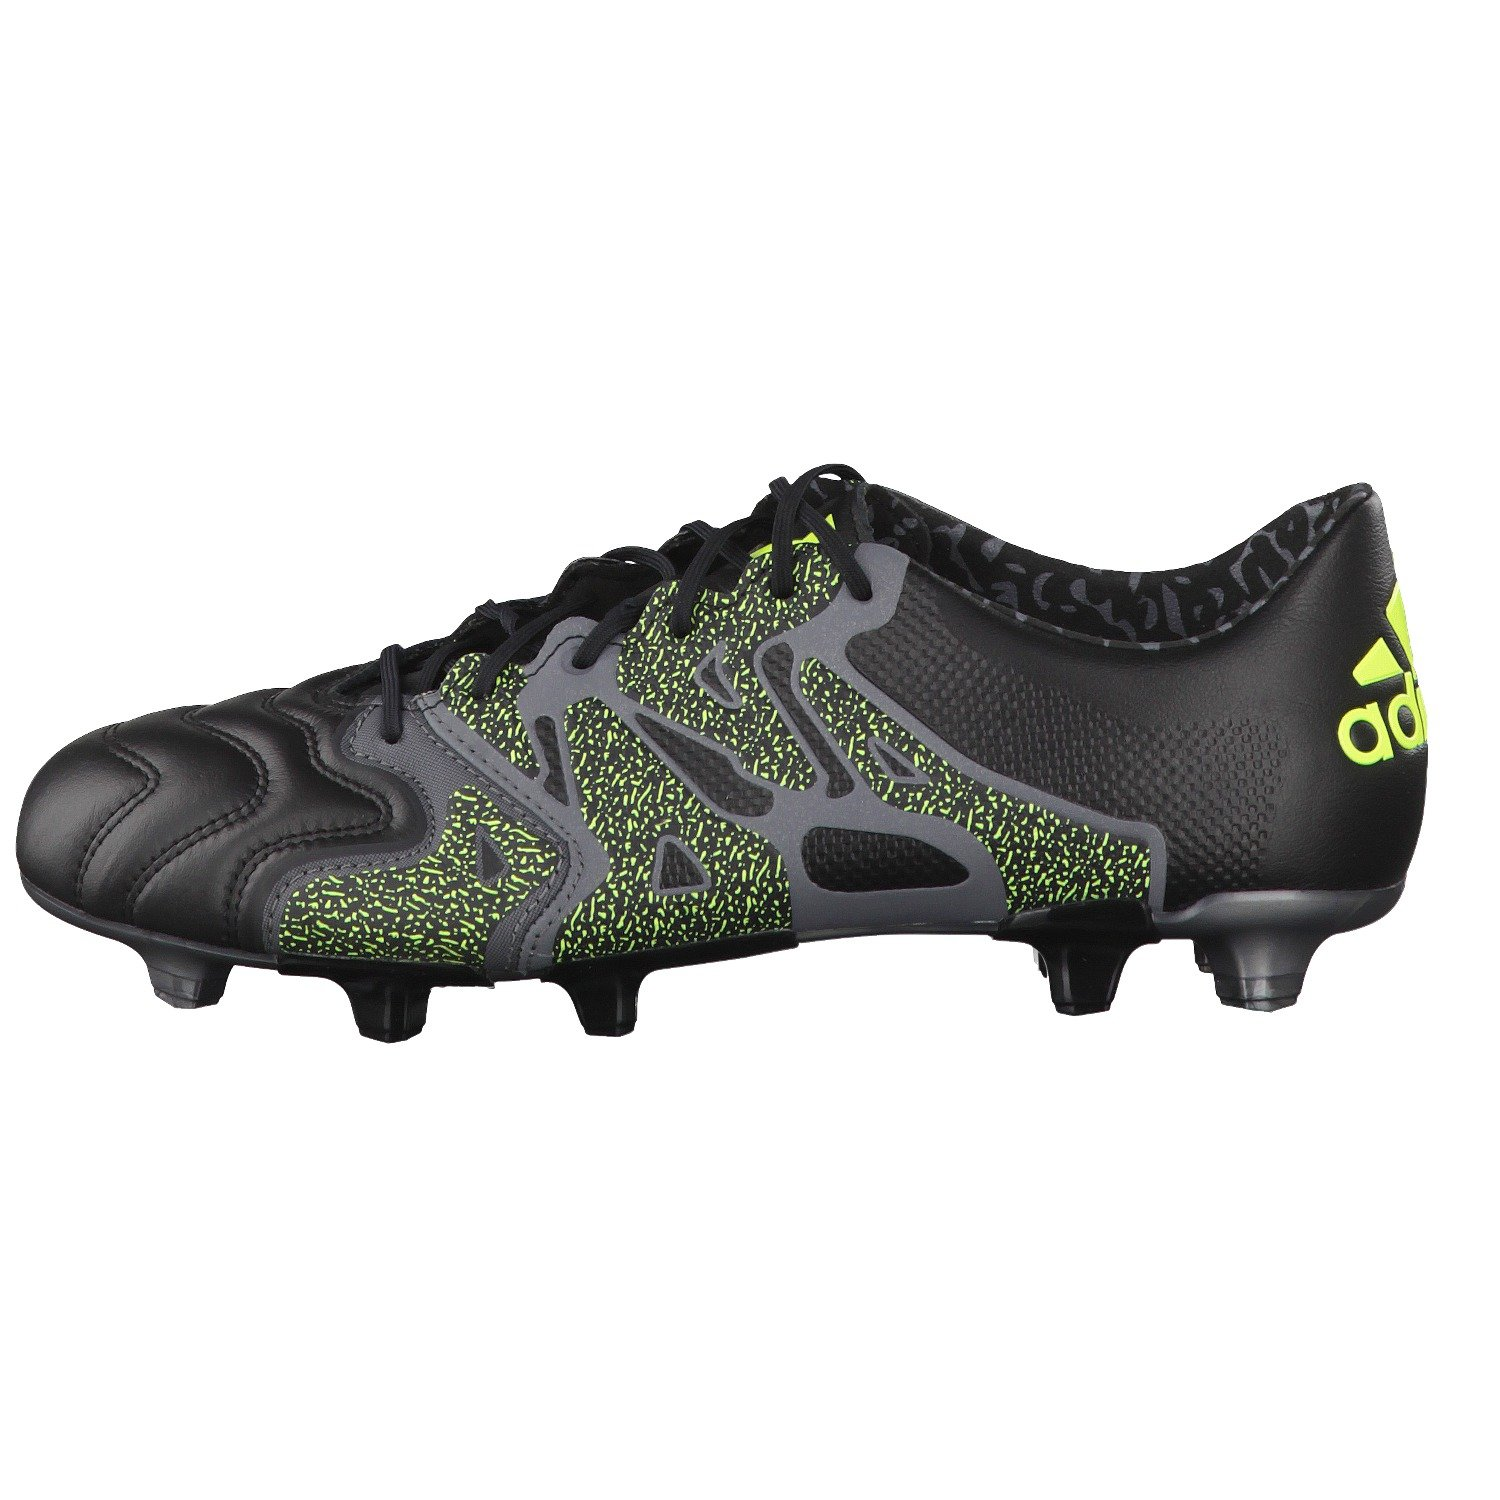 ccb828d446db adidas X 15.1 Leather FG AG Football Boots - Adult - Core Black Night  Metallic Solar Yellow  Amazon.co.uk  Shoes   Bags